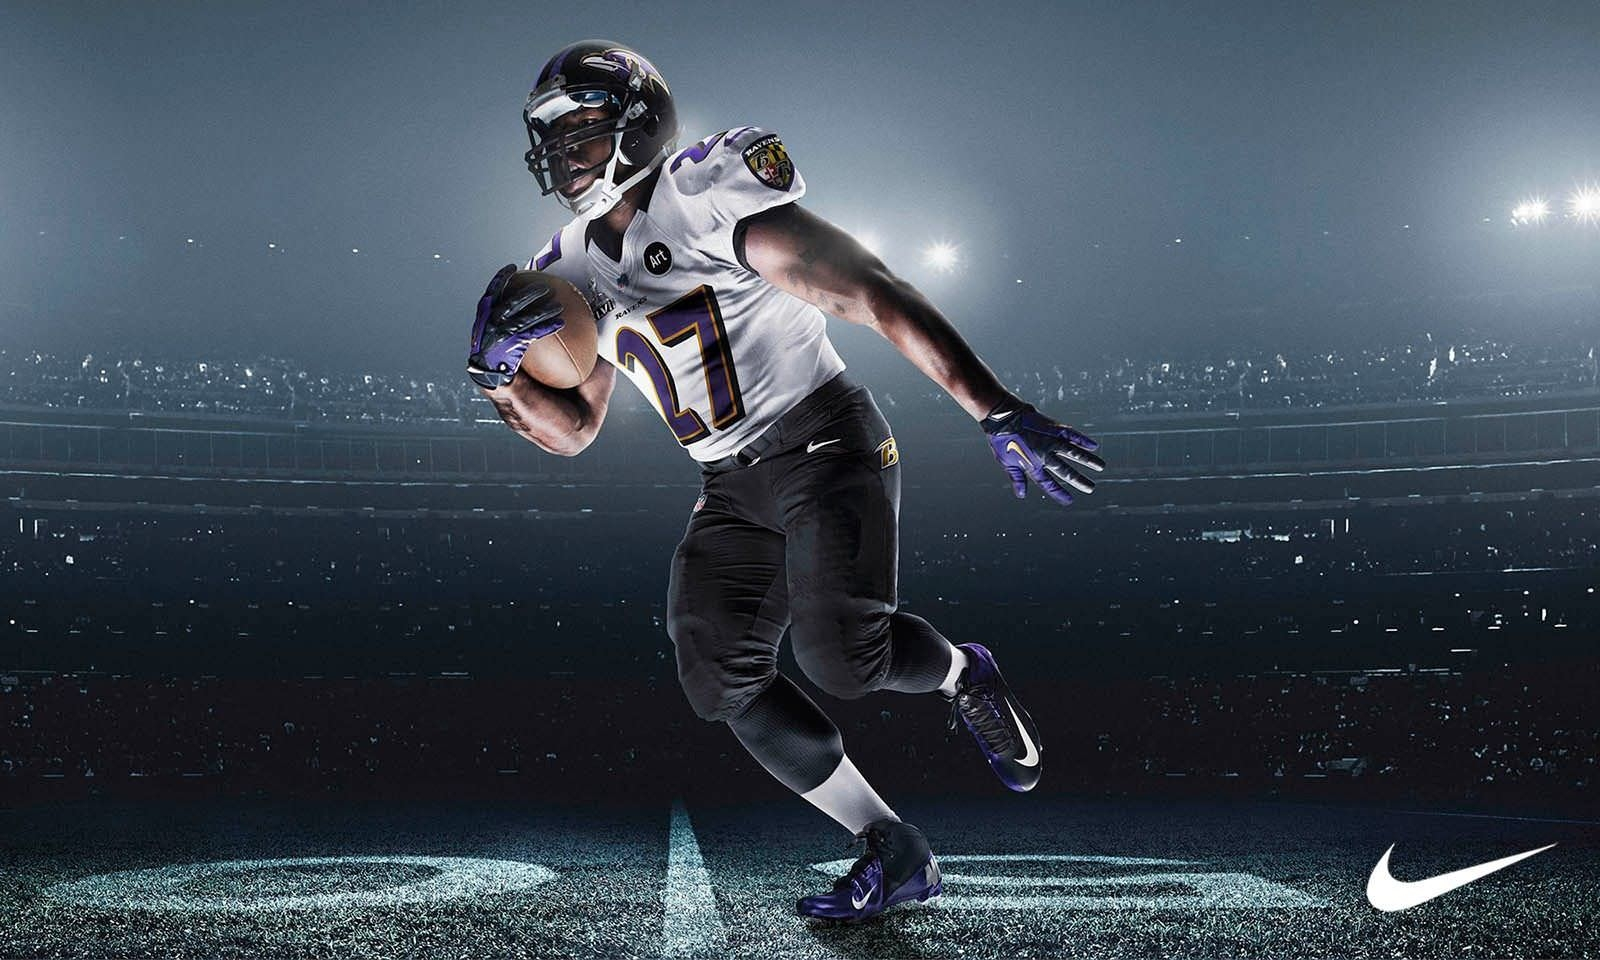 Nfl Football Player Background